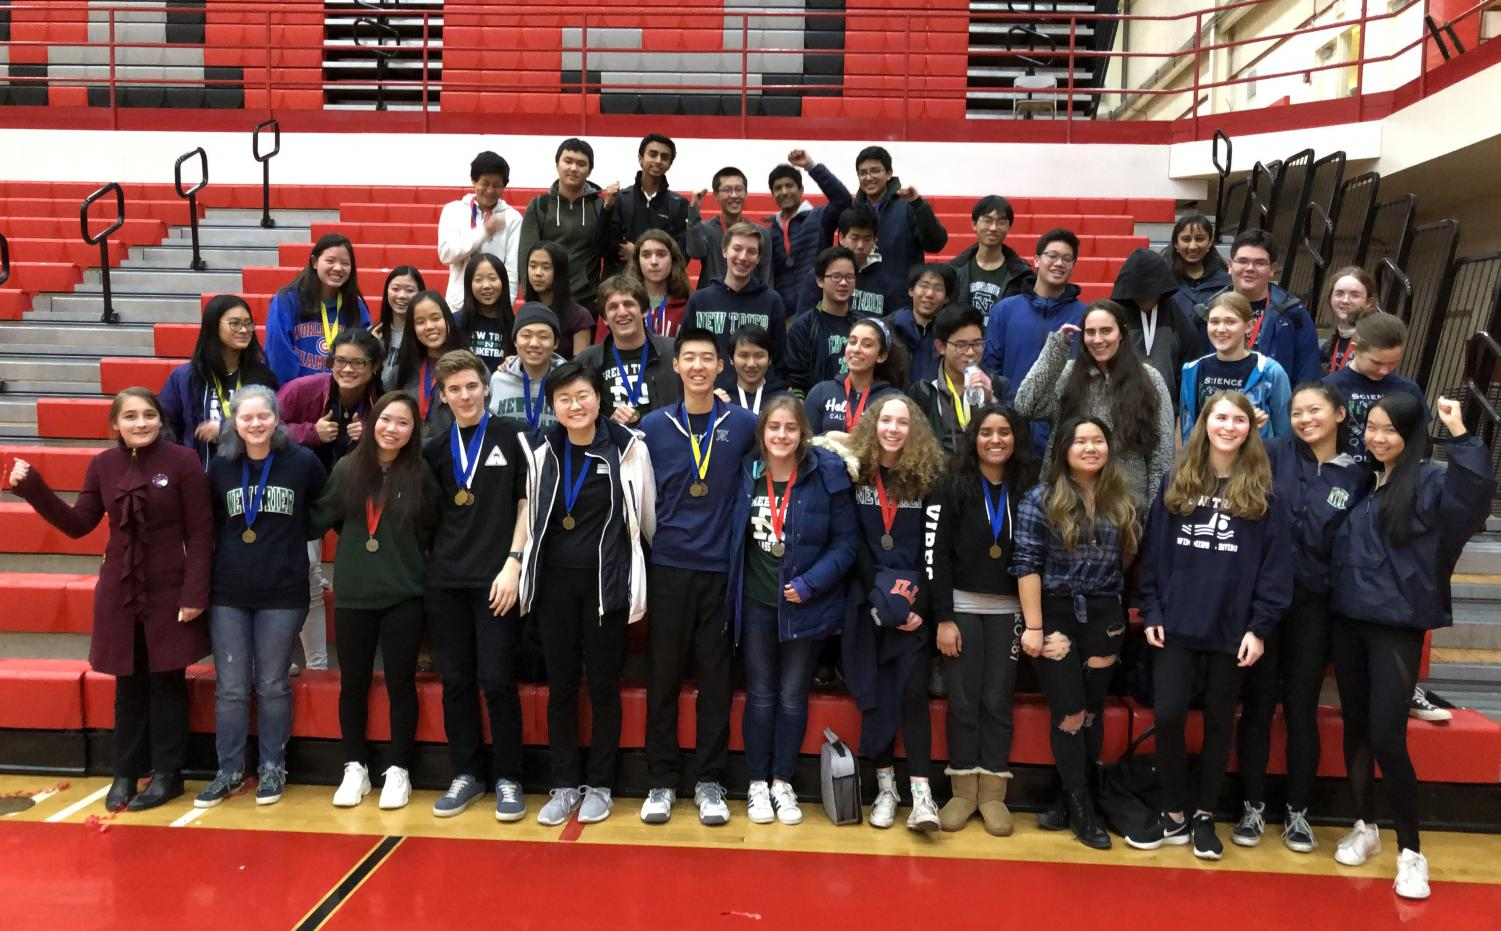 Harvard report emphasizes the value of participating in academic clubs like Science Olympiad